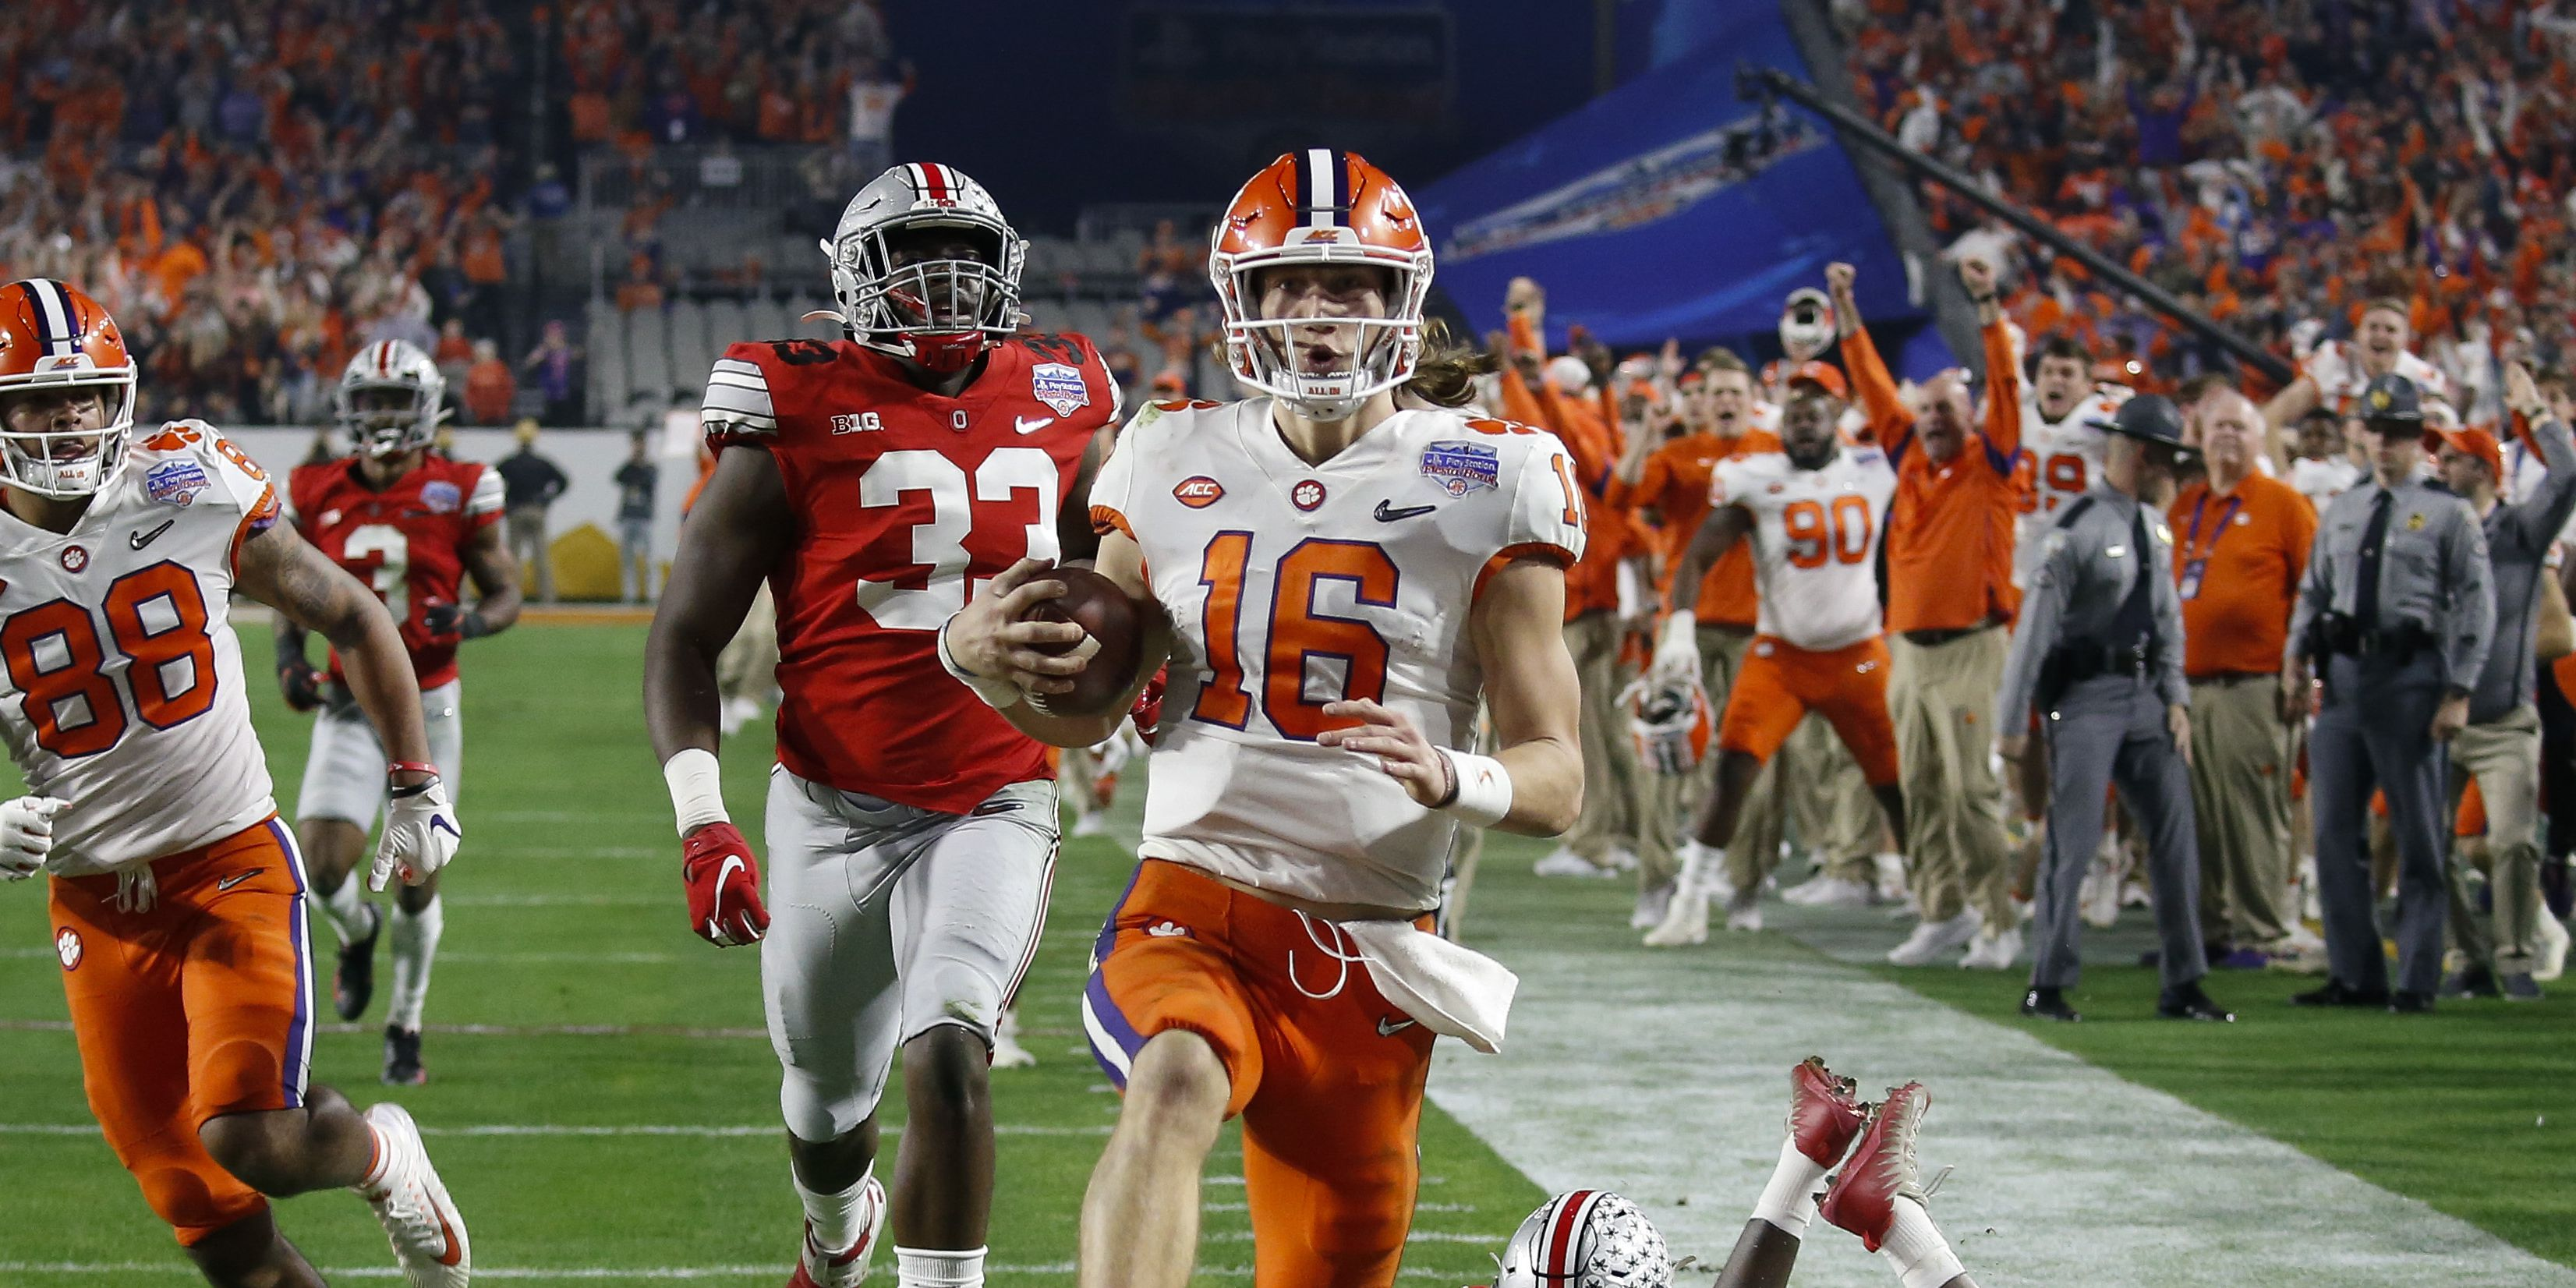 No. 3 Clemson beats No. 2 Ohio State 29-23 to advance to face No. 1 LSU in college football national championship game